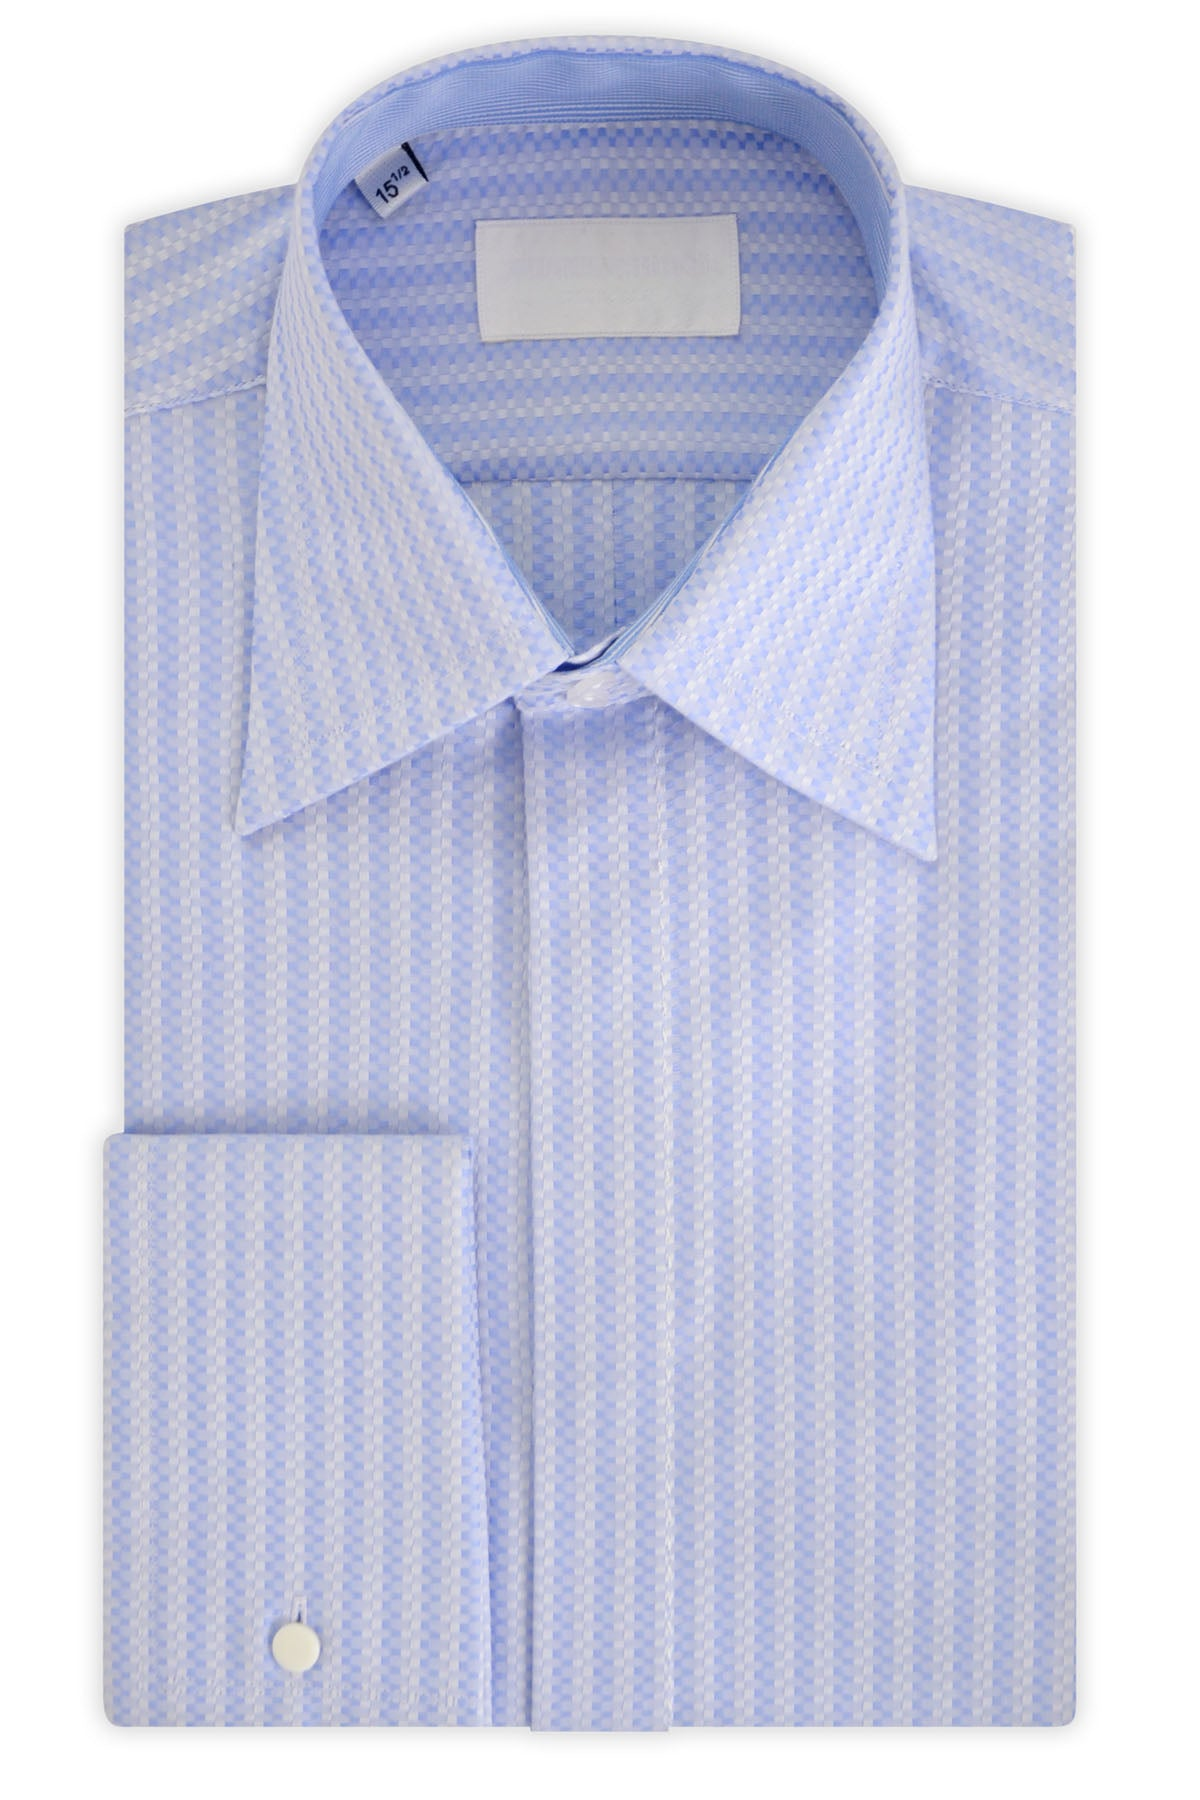 269a1ccd Oxford Blue over White Stripe Forward Point Collar Shirt – William Hunt  Savile Row